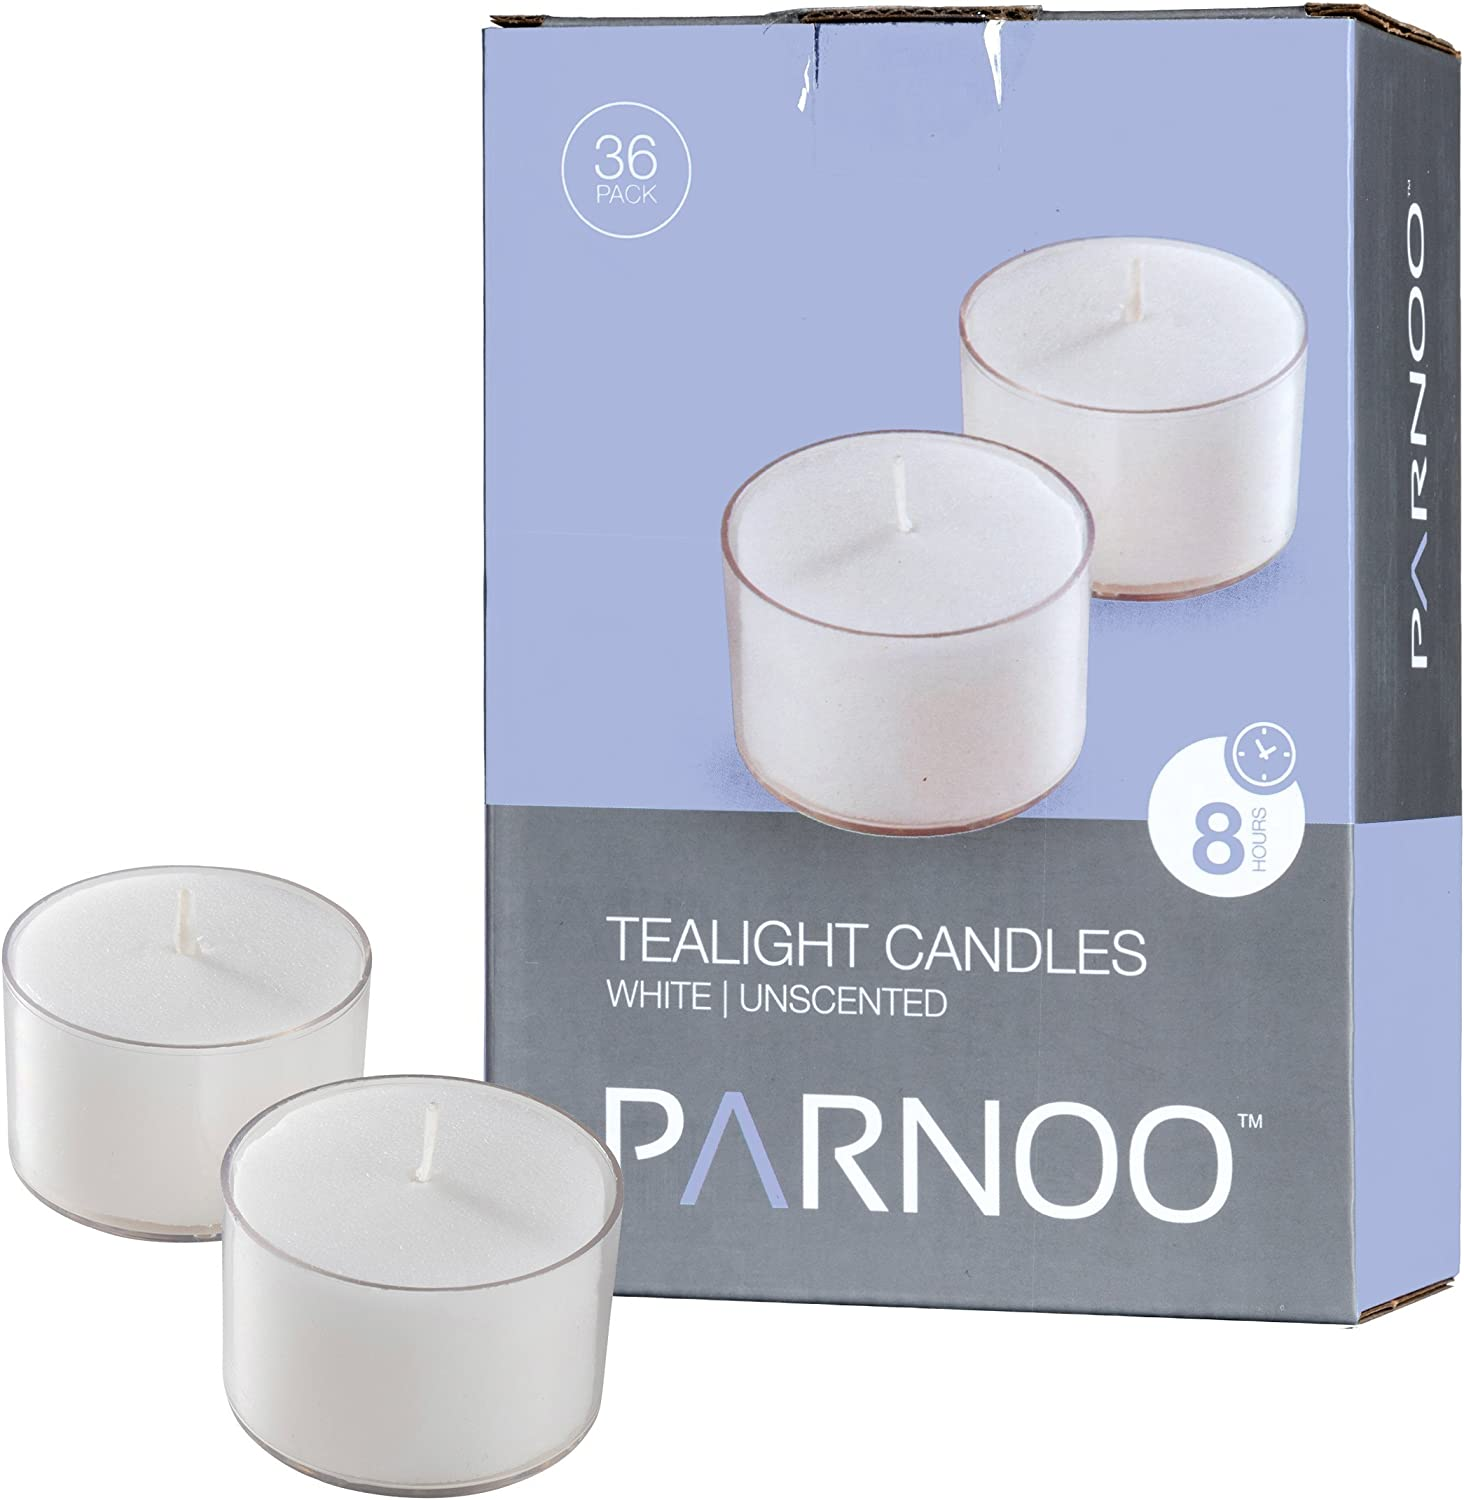 Set of 100 CandleNScent 5 Hour Tea Light Candles in Clear Cup Extended Burn Time tealights